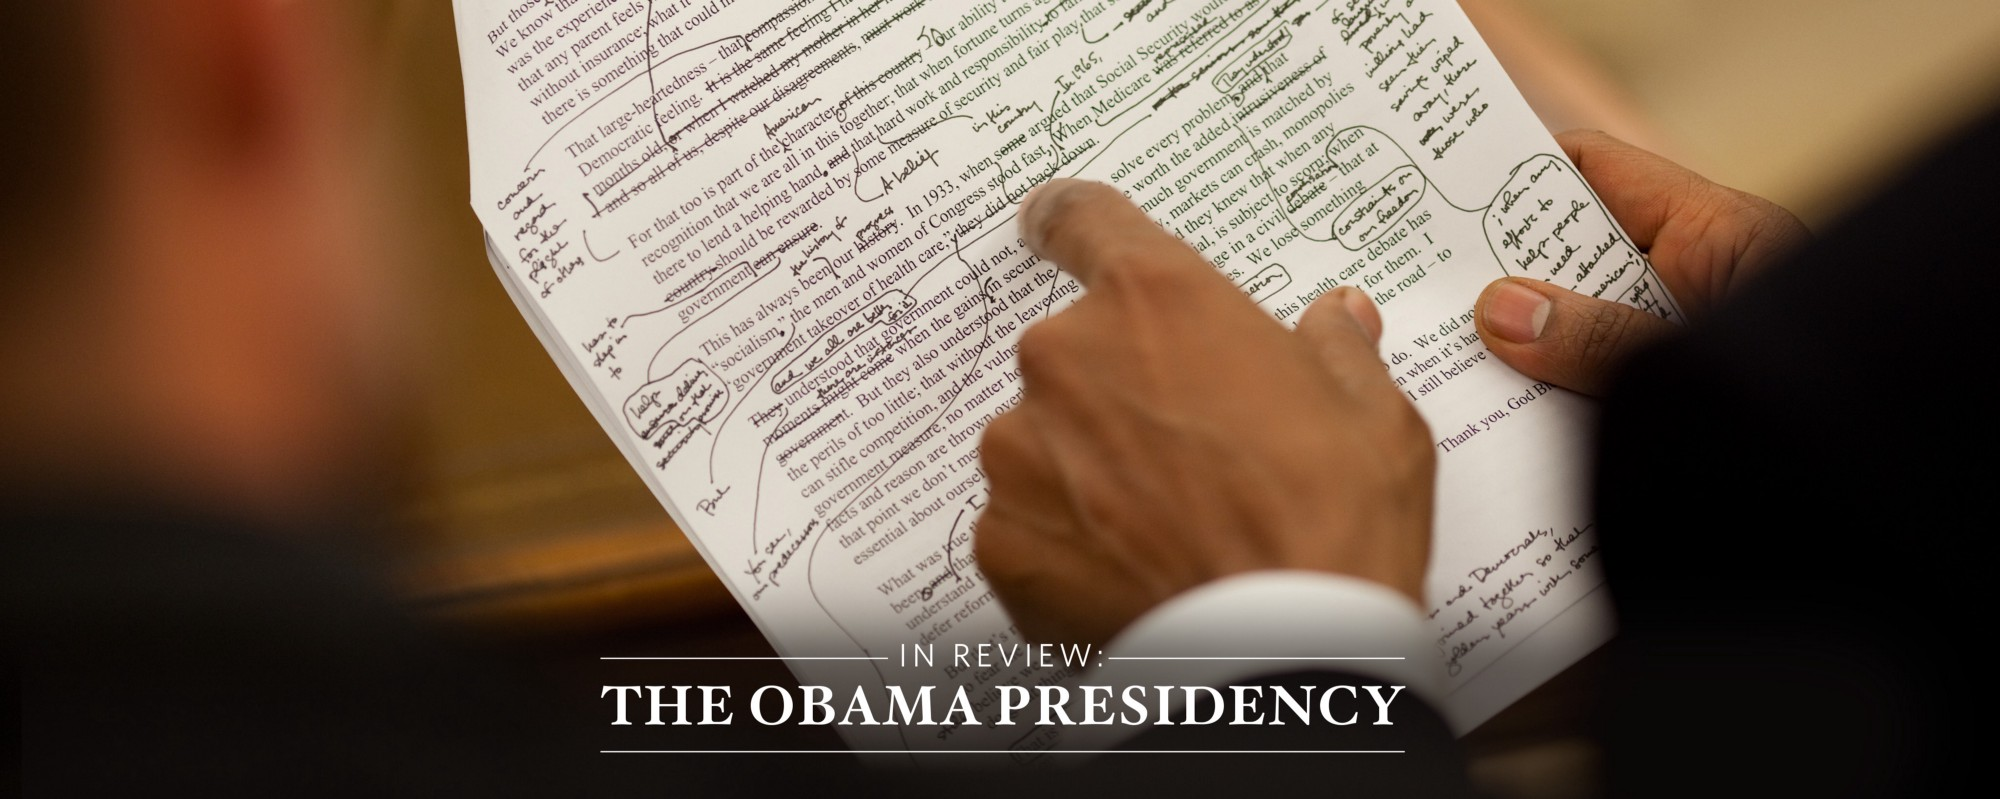 Descriptive essay on obama